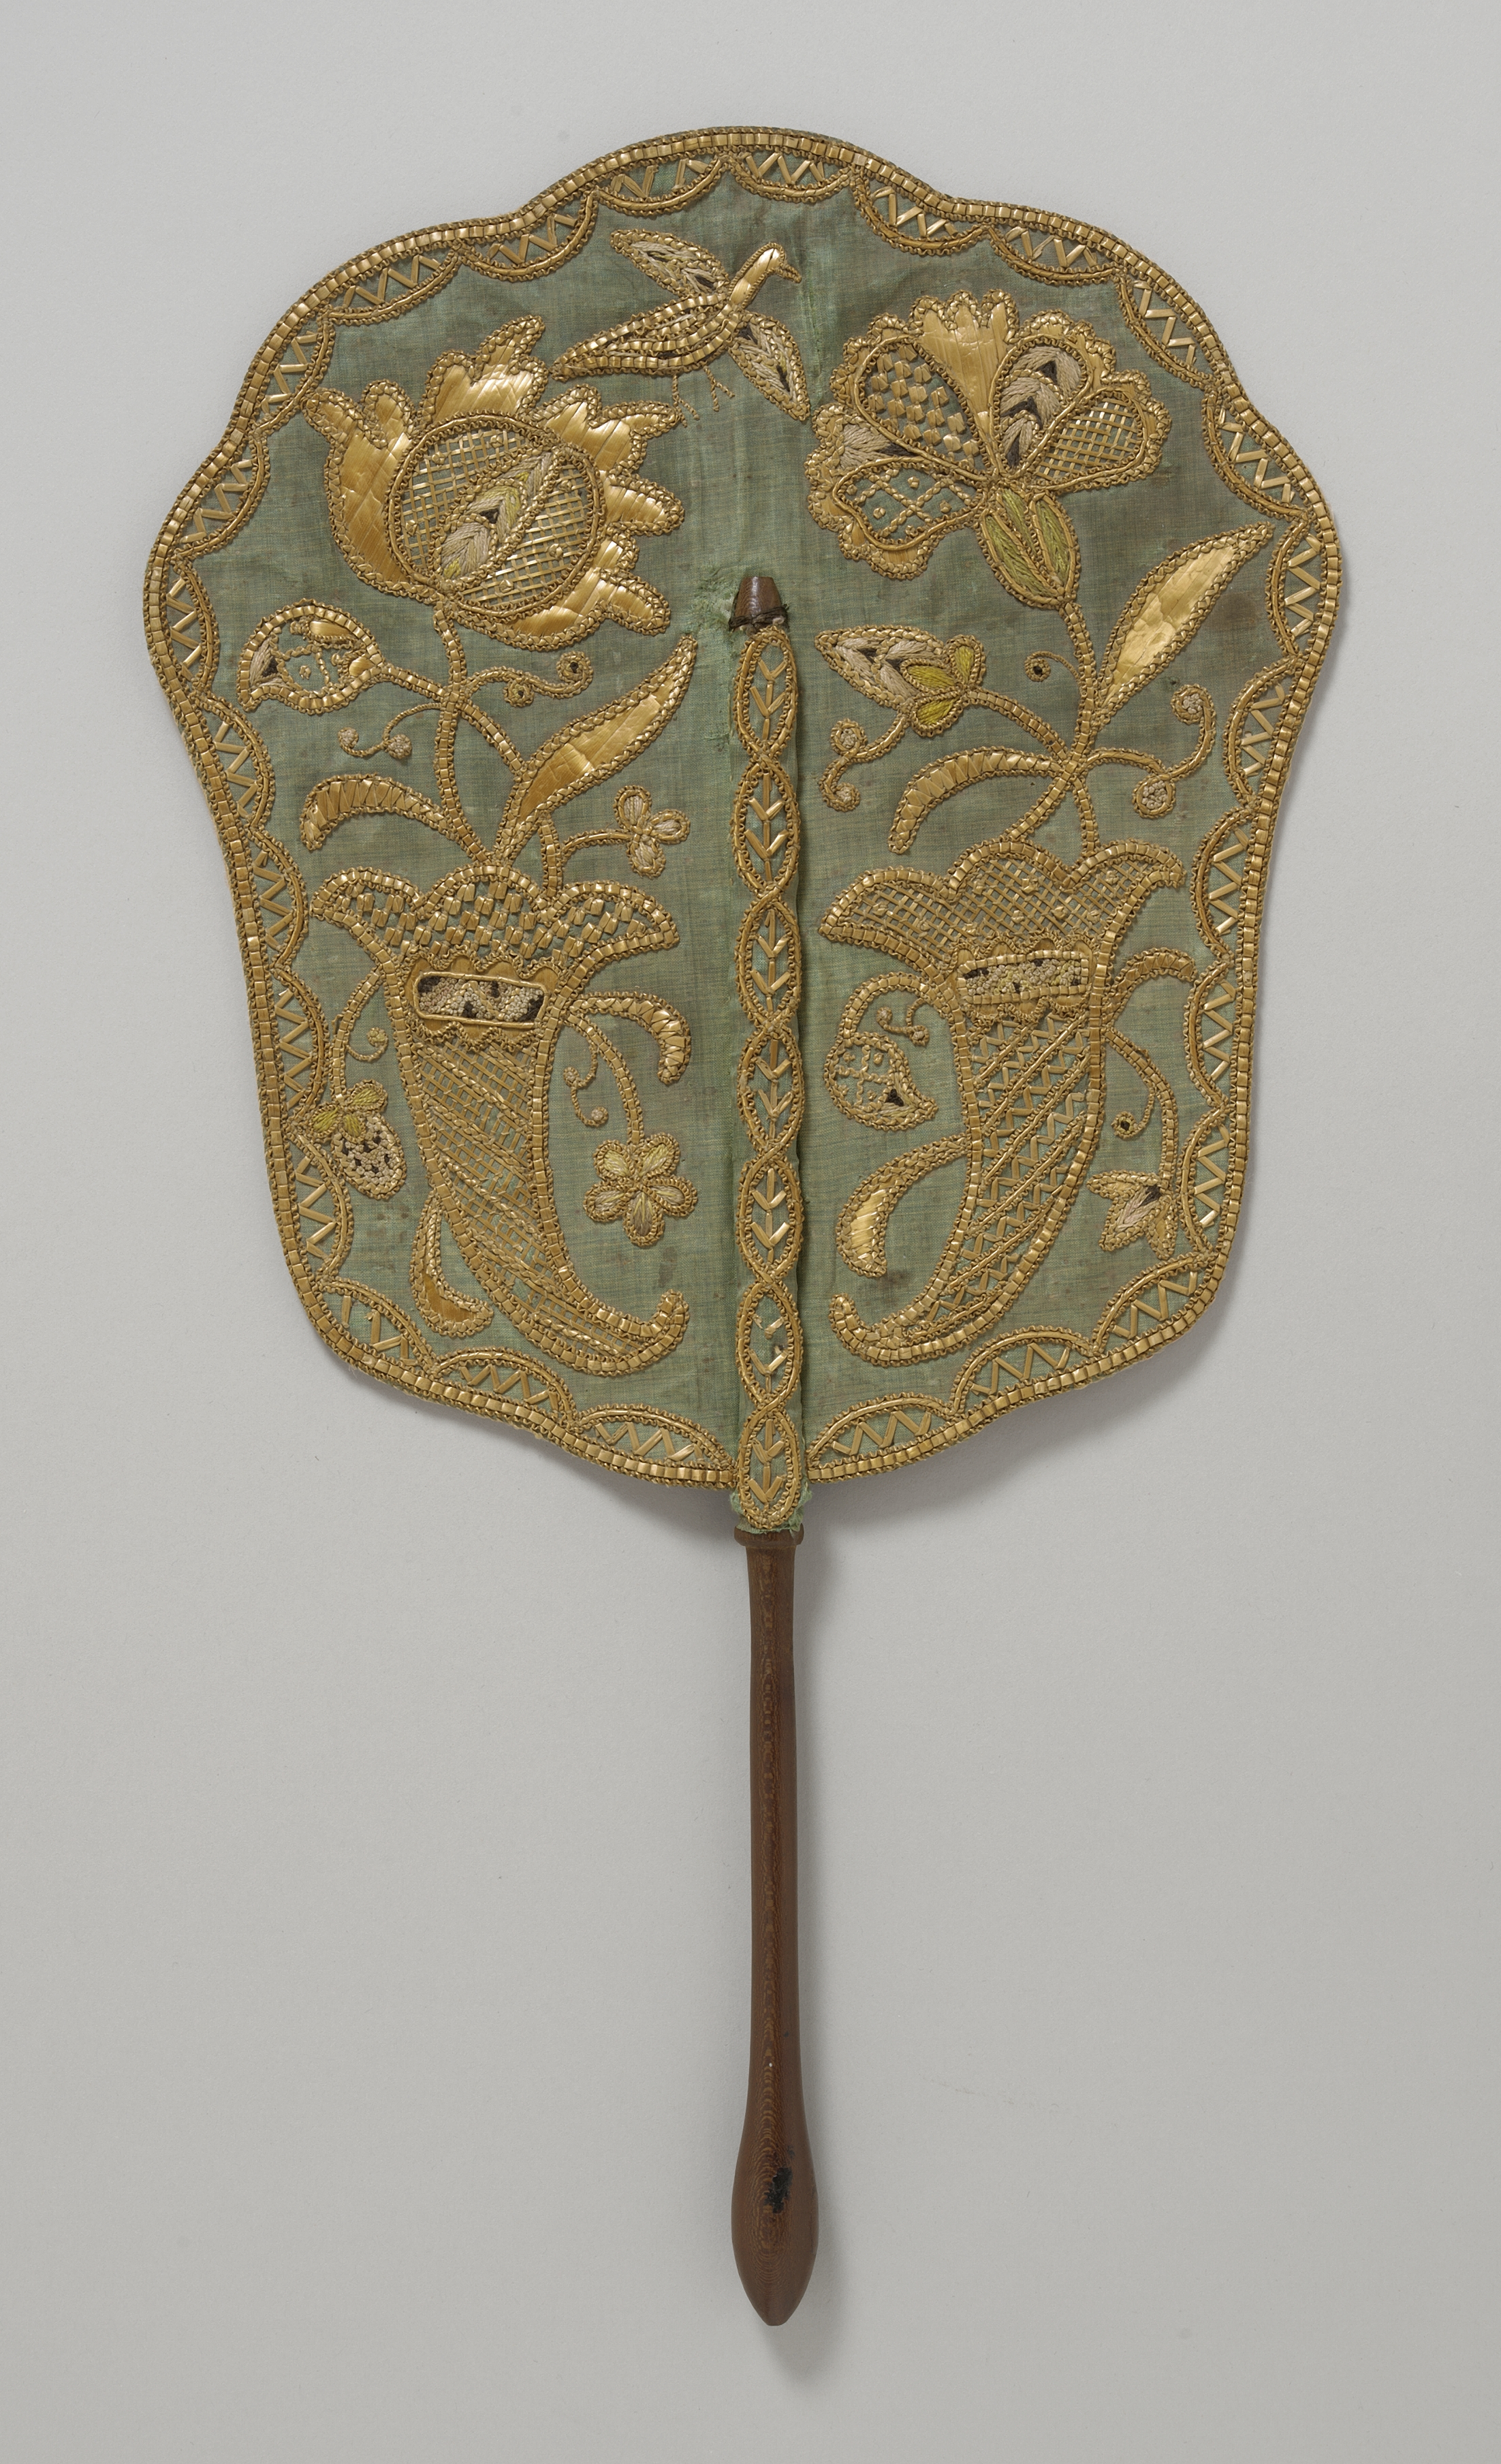 Green silk fan 1740. Courtesy LACMA Los-Angeles County Museum of Art